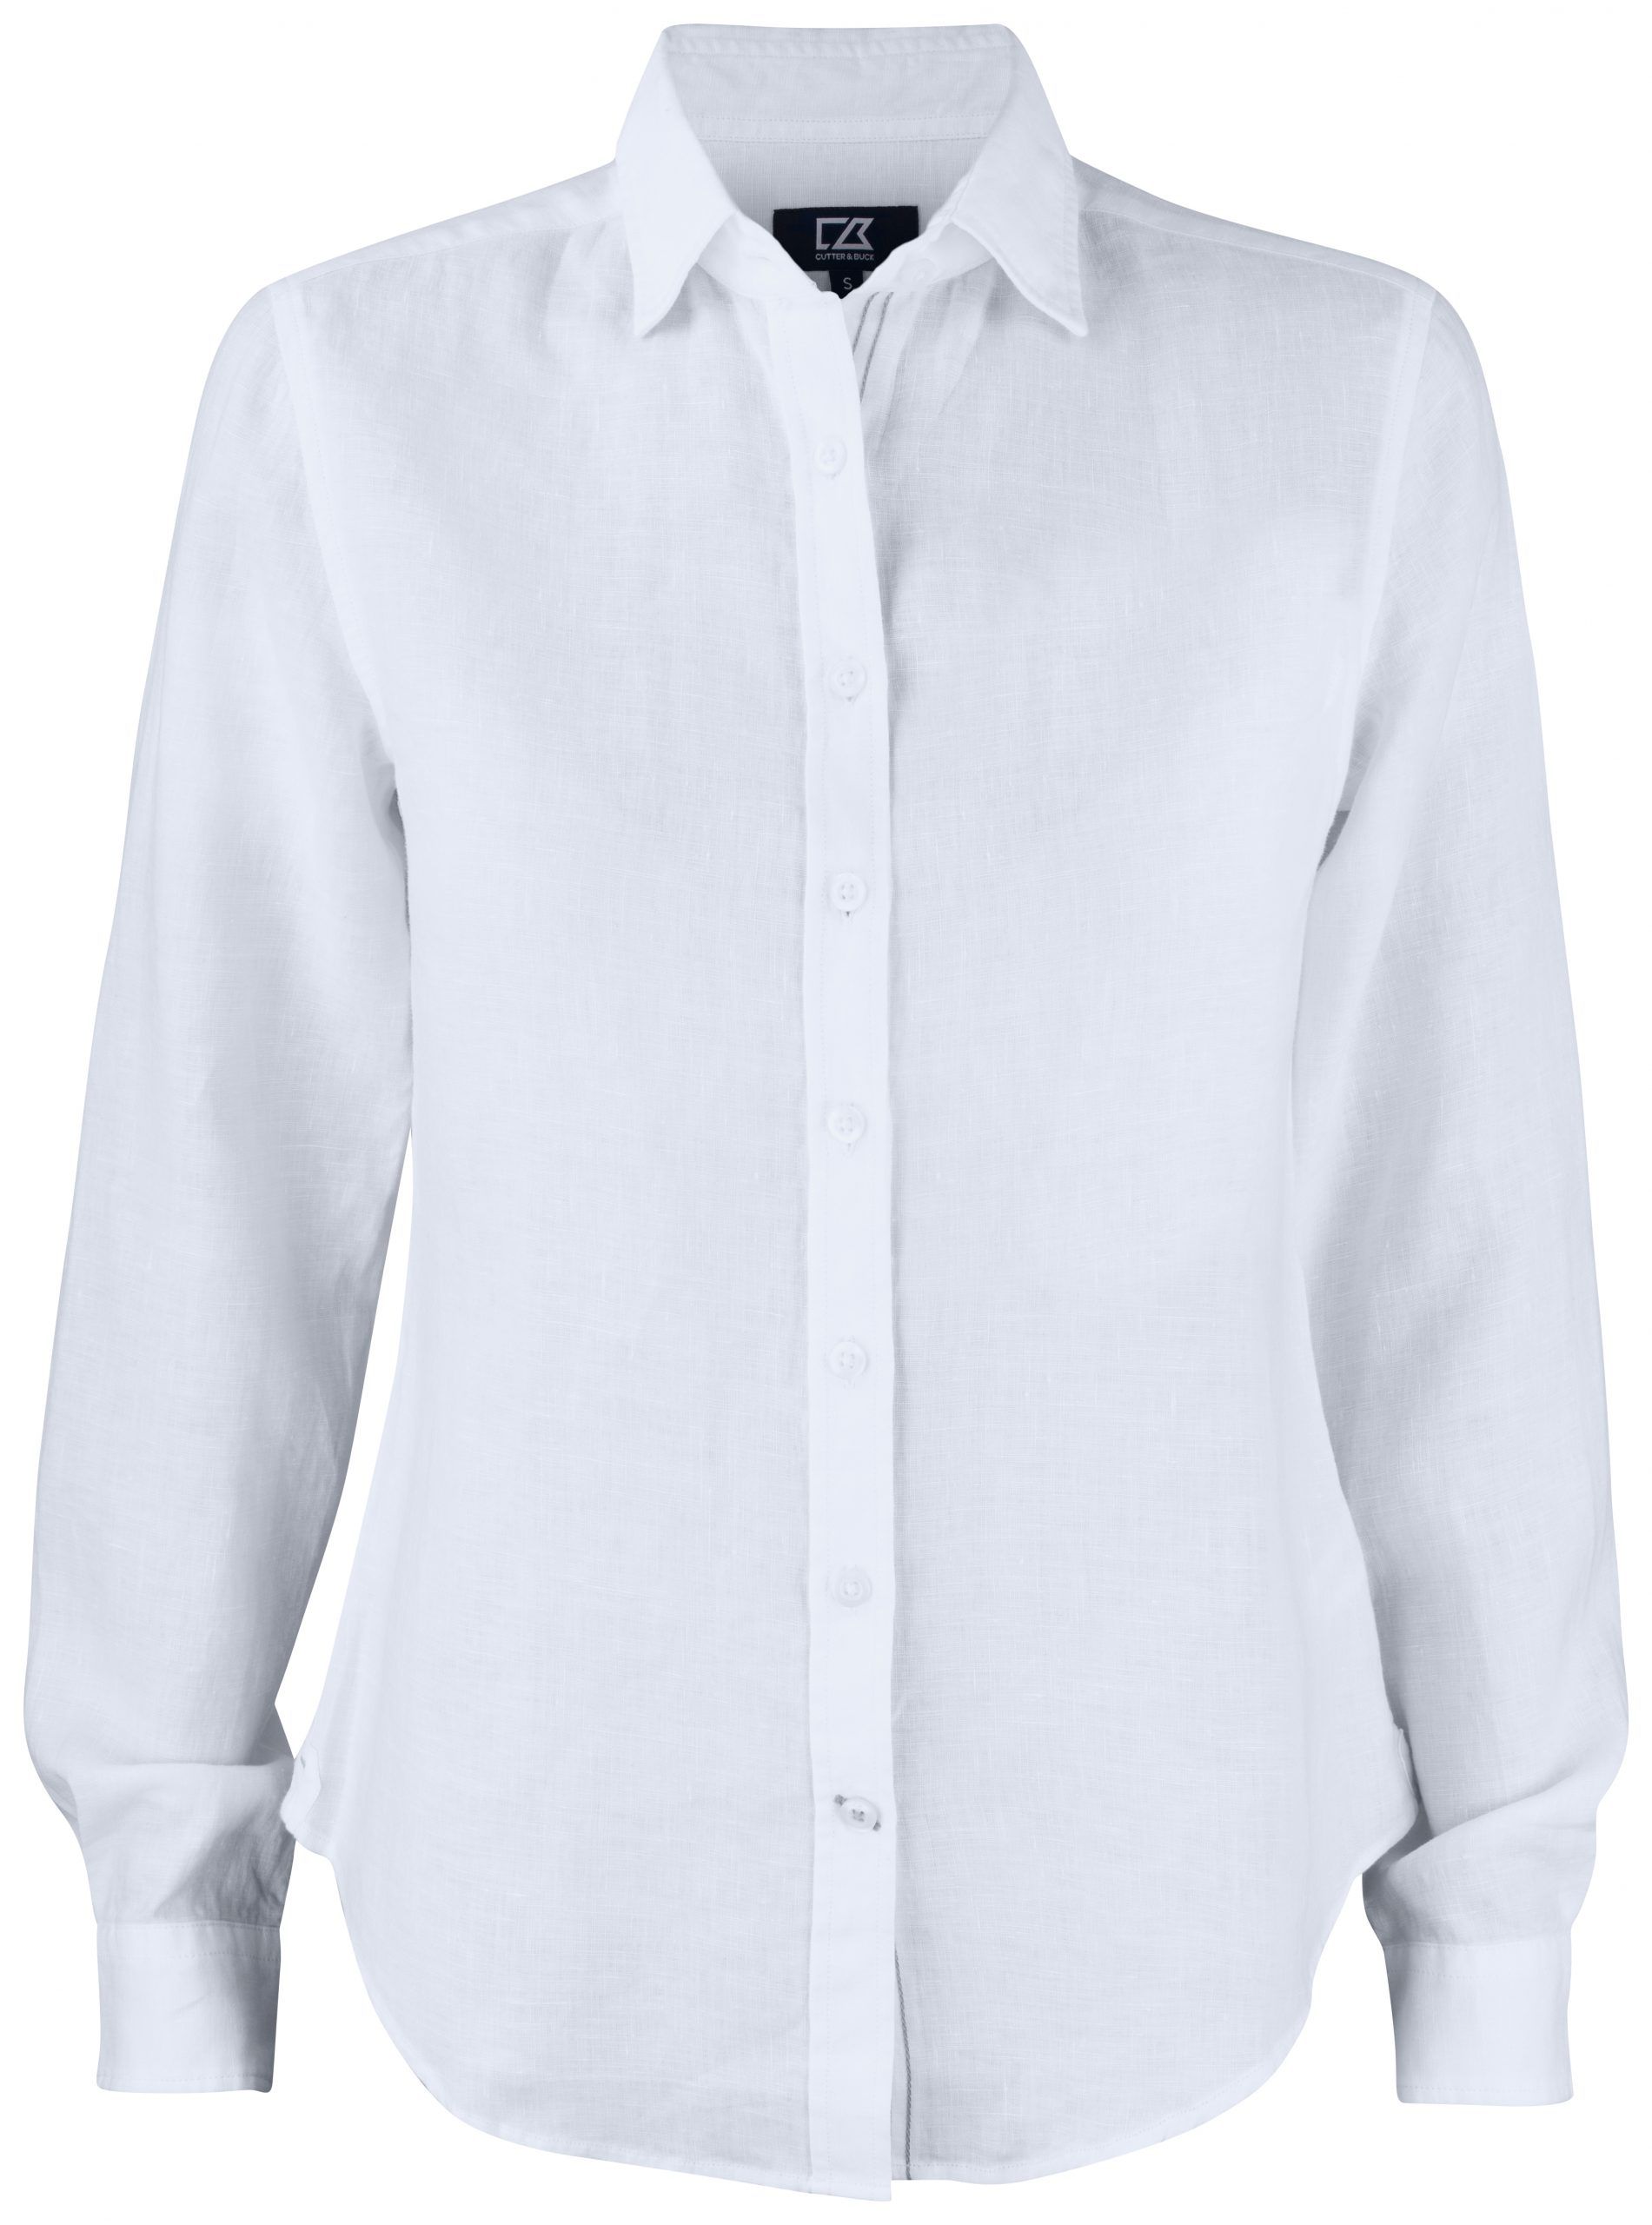 Cutterandbuck Summerland Linen Shirt Ladies White